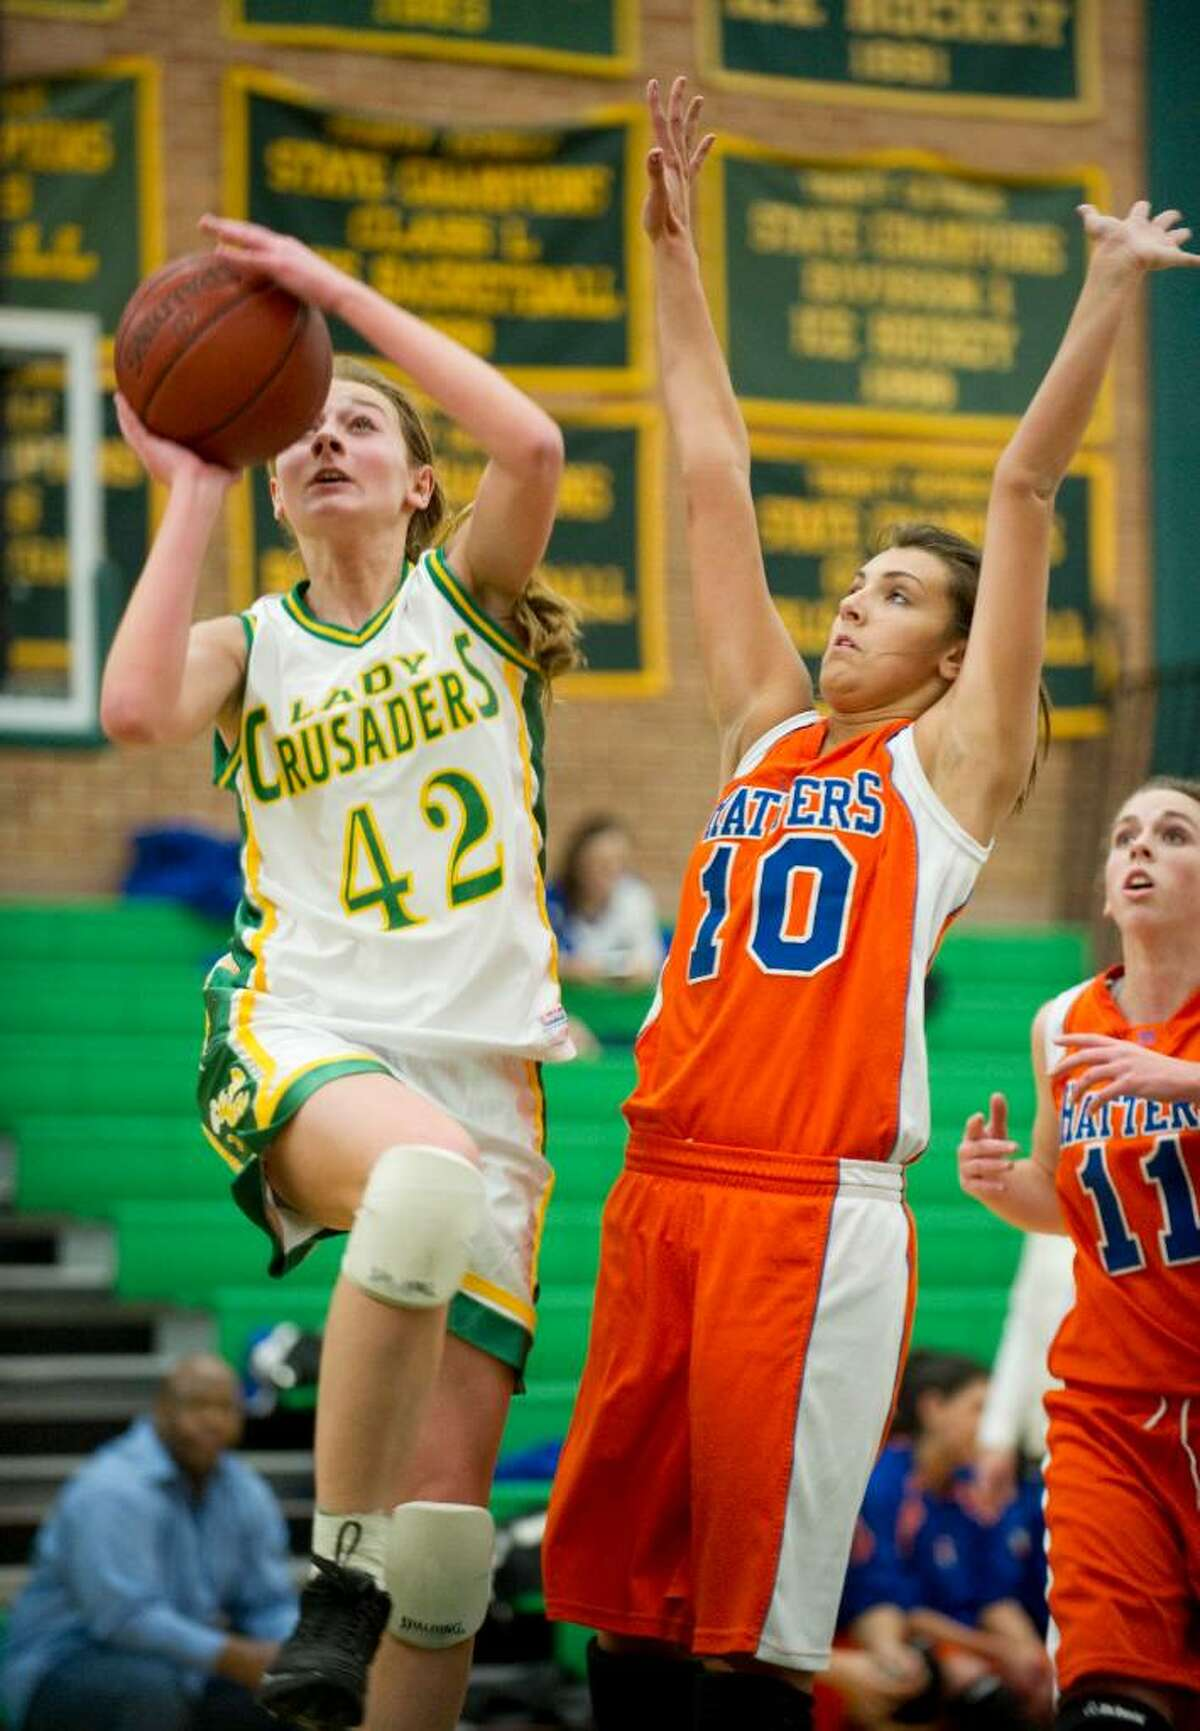 Trinity's Mackenzie Griffin, left, shoots while defended by Danbury's Casey Smith, right, during an FCIAC girls basketball game at Trinity Catholic High School in Stamford, Conn. on Tuesday, Jan. 109, 2010.